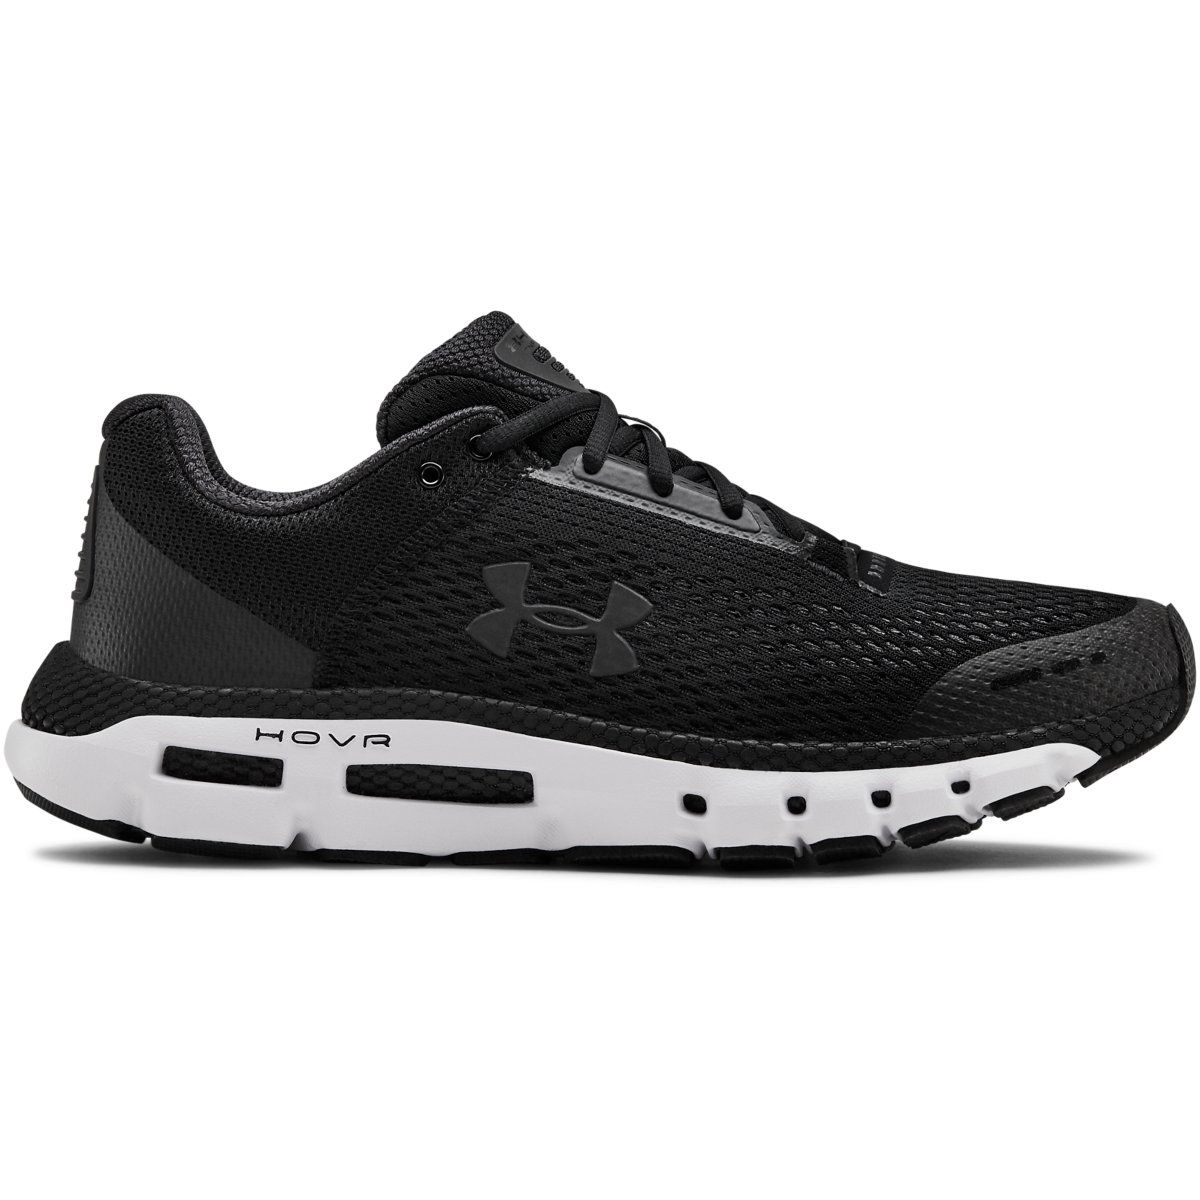 Under Armour Under Armour HOVR Infinite Run Shoe   Running Shoes